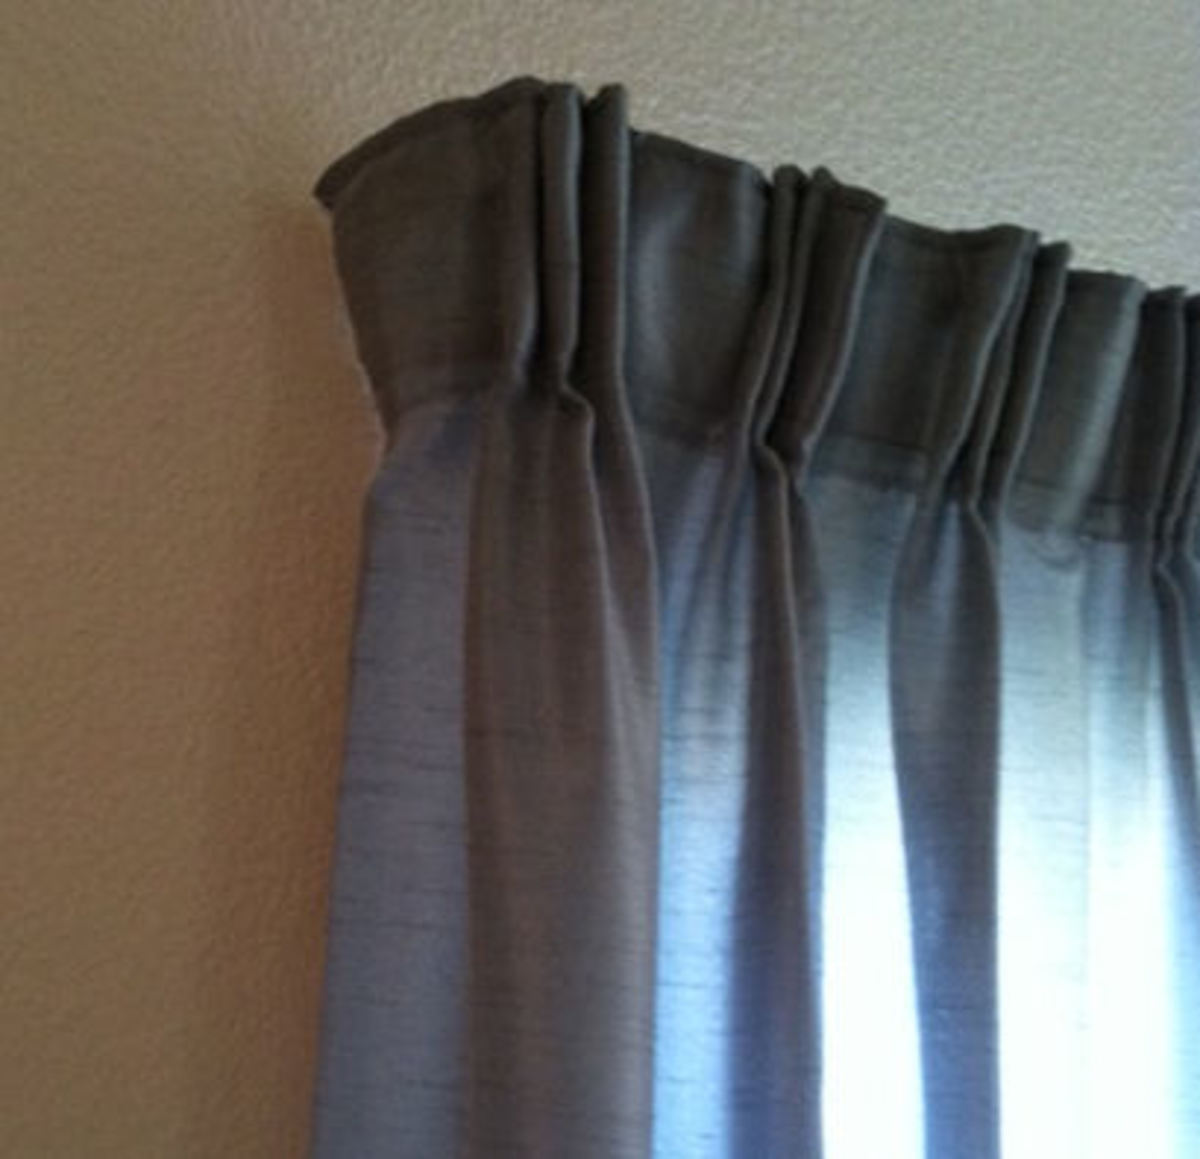 Wrapping the drapery around the end of the rod gives privacy, and keeps out light that will wake you in the mornings.